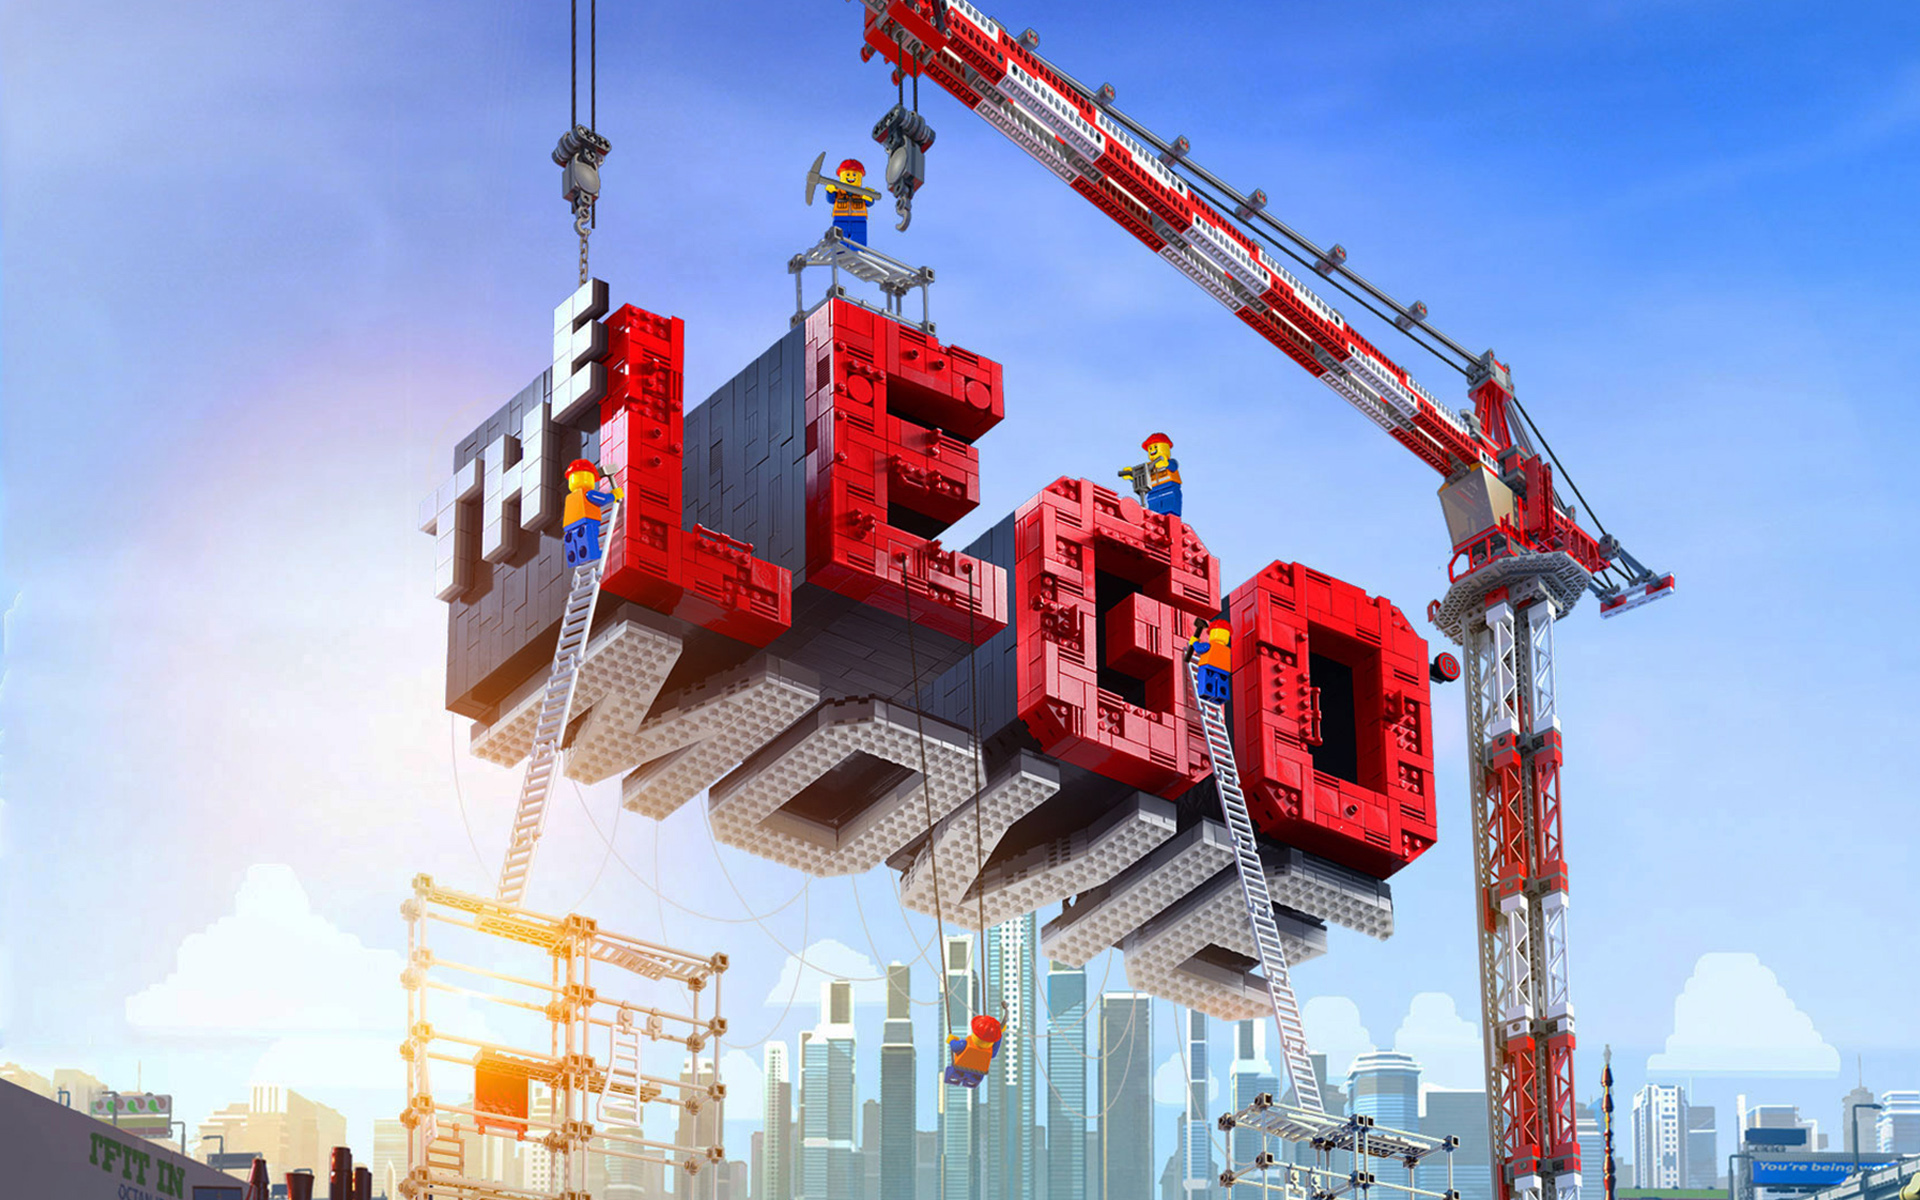 The-Lego-Movie-title.jpg